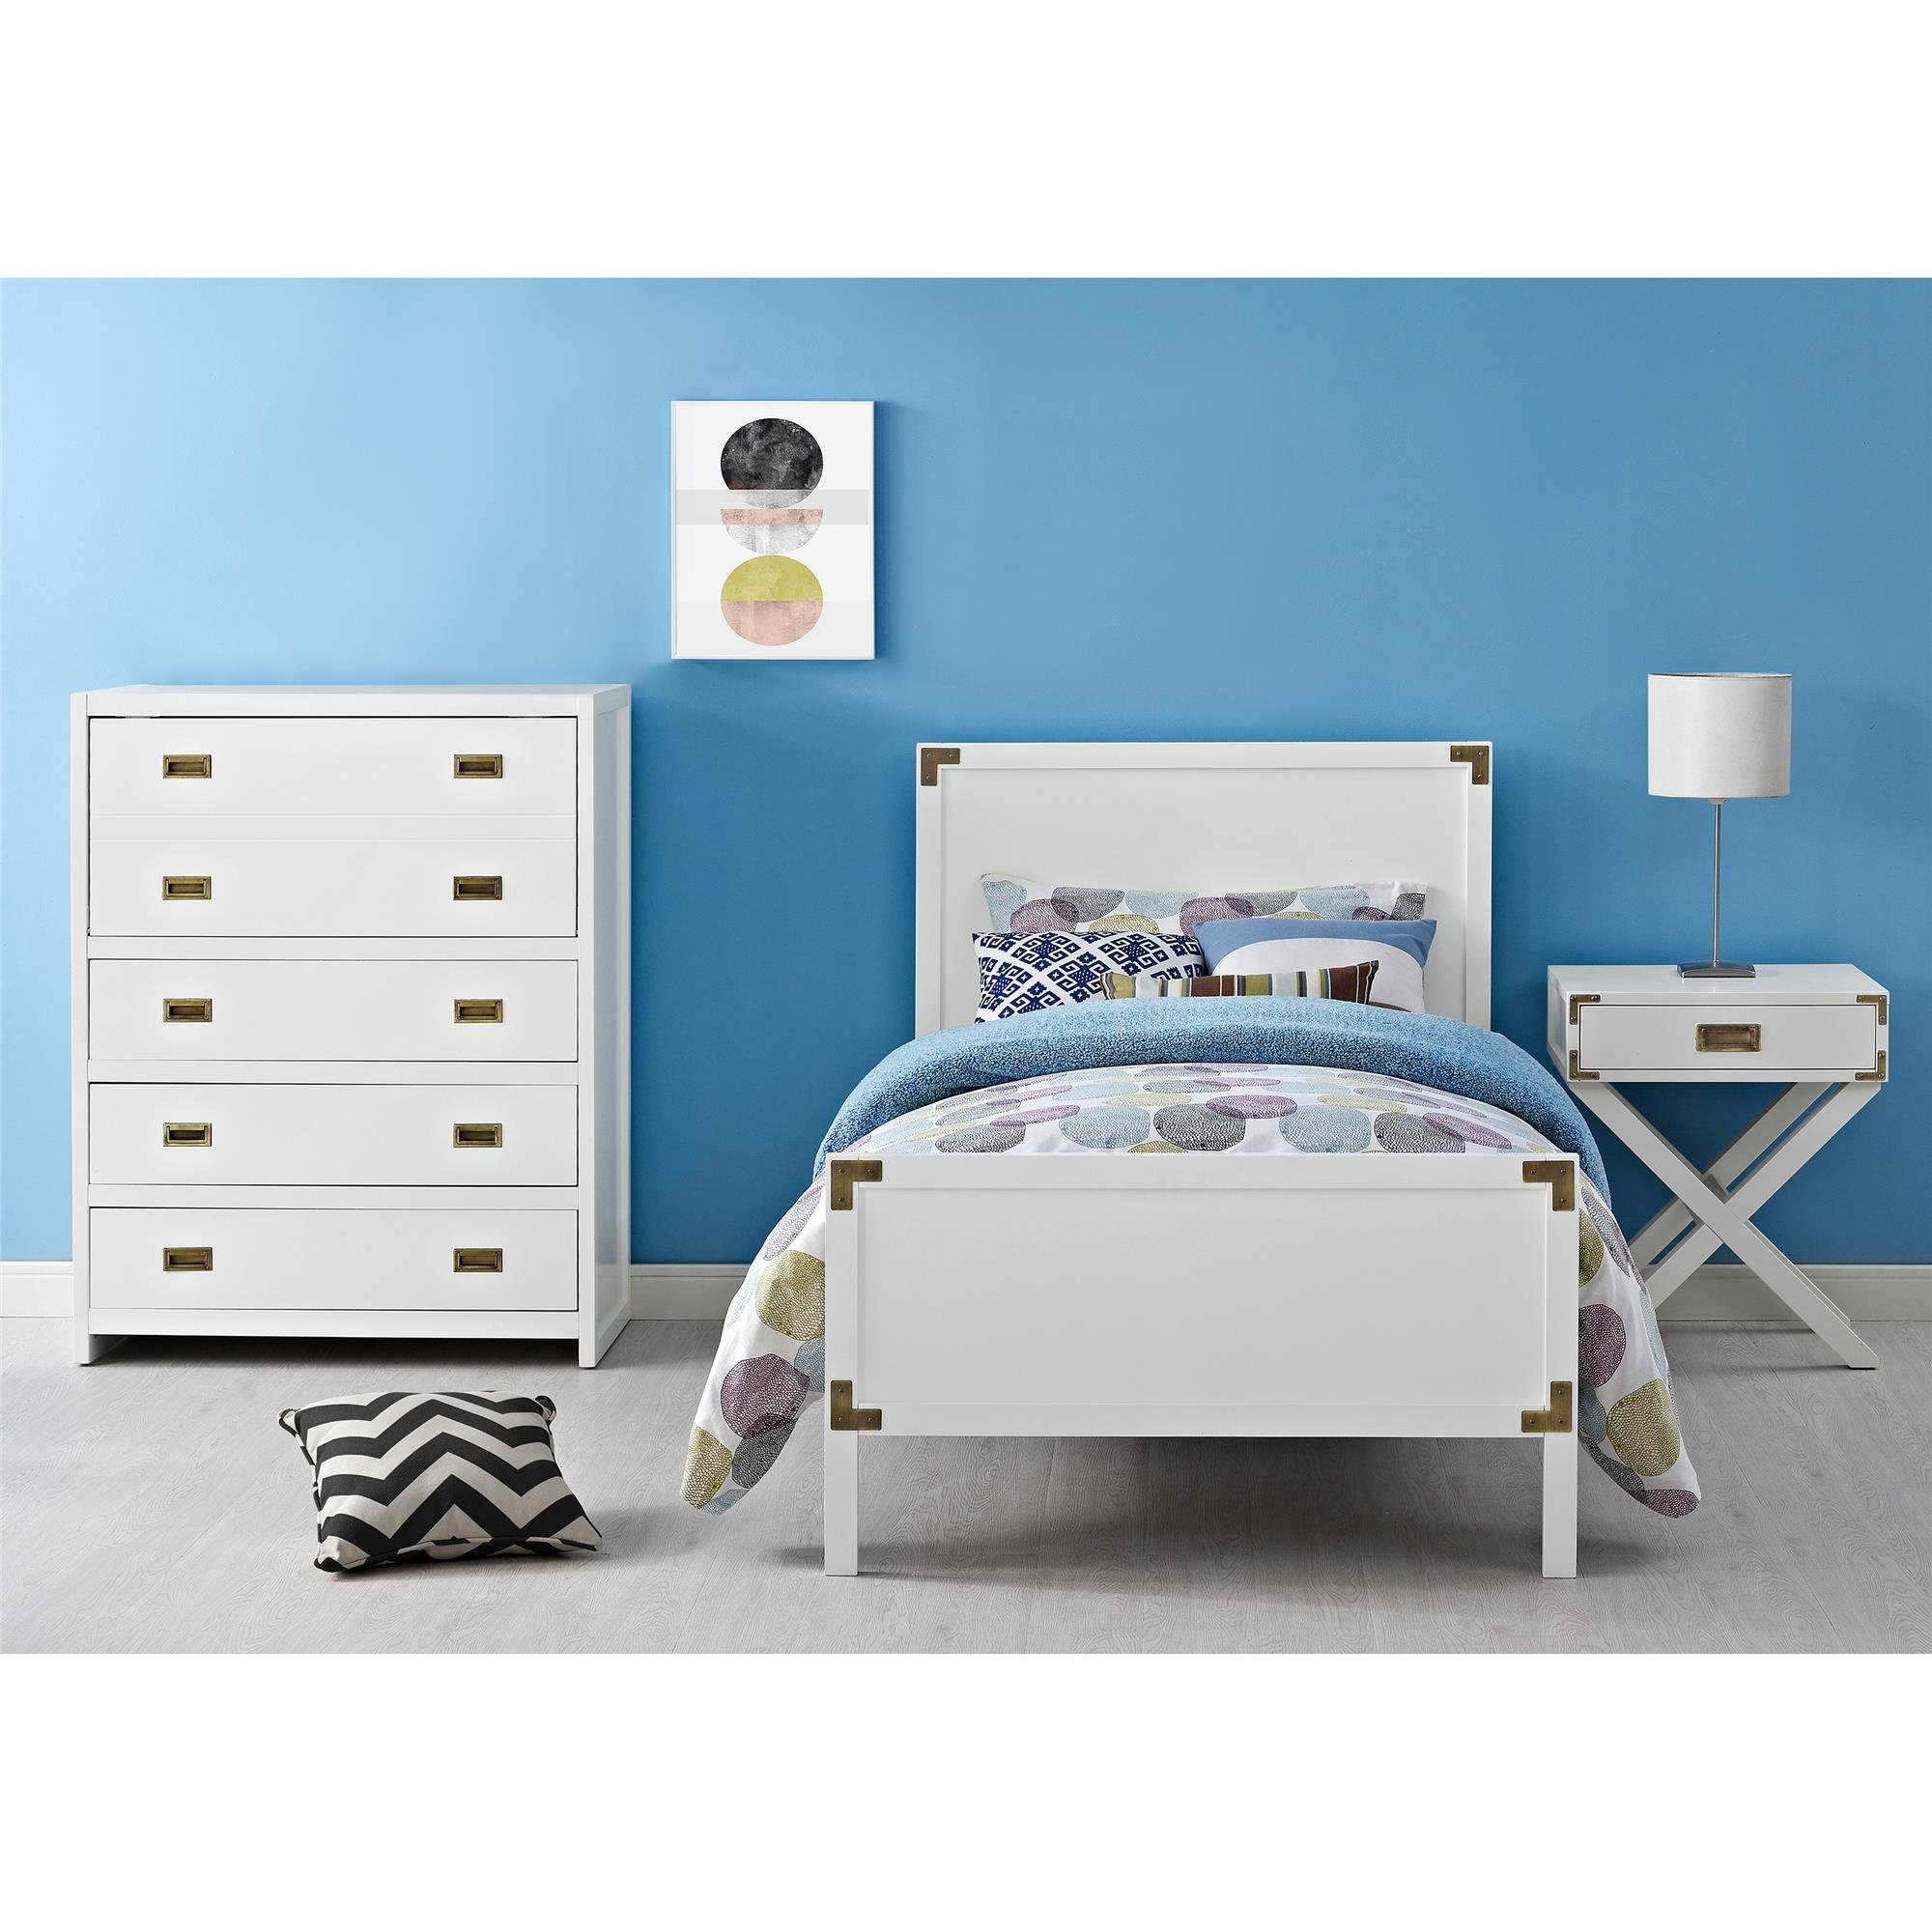 Baby Relax Miles Nightstand, White by Baby Relax (Image #8)